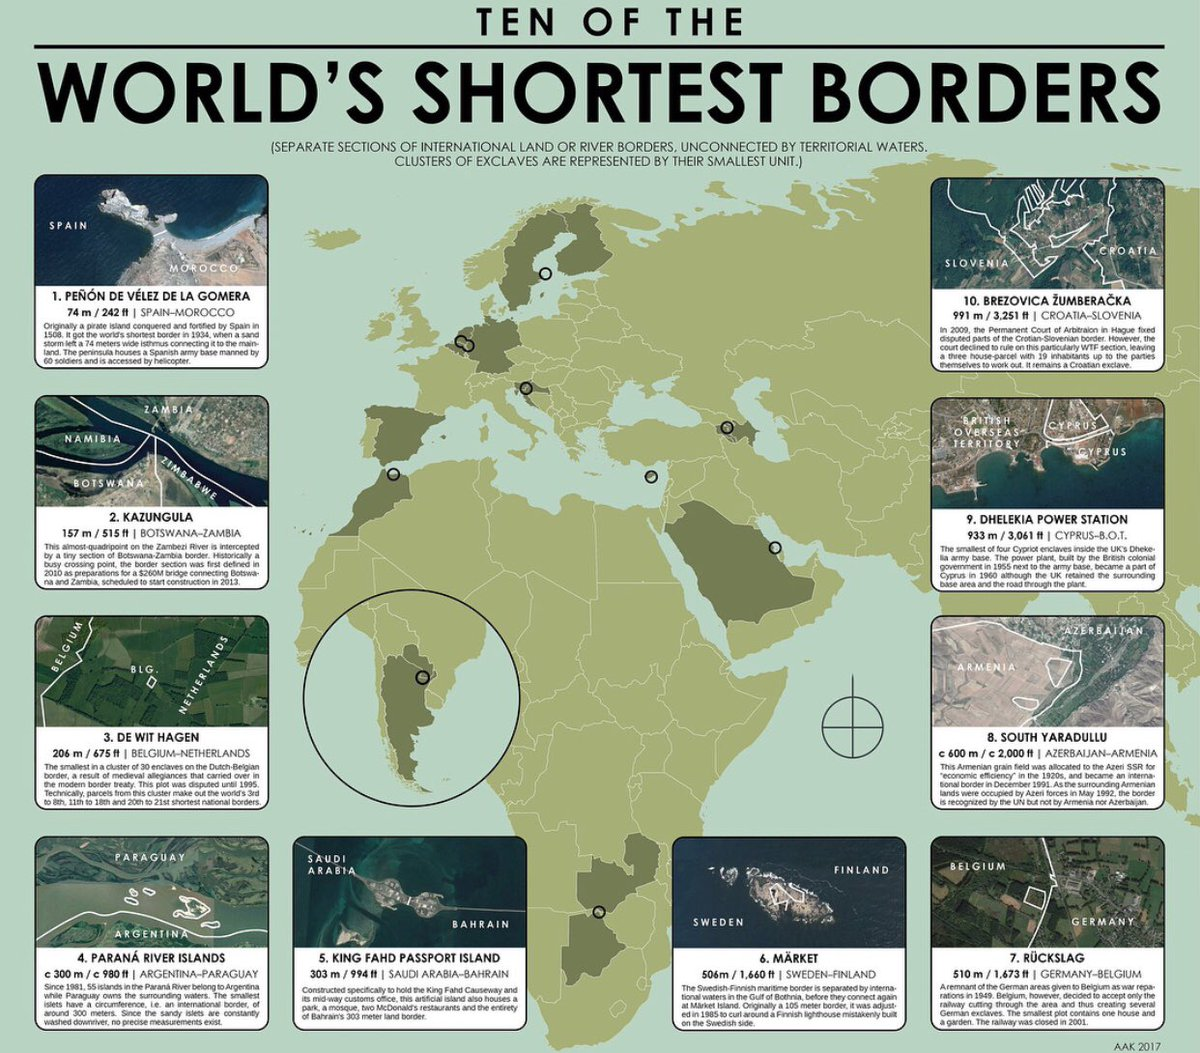 Paul b barby on twitter cool map i found highlighting some of paul b barby on twitter cool map i found highlighting some of the shortest borders in the world the shortest being pen de vlez de la gomera between gumiabroncs Image collections